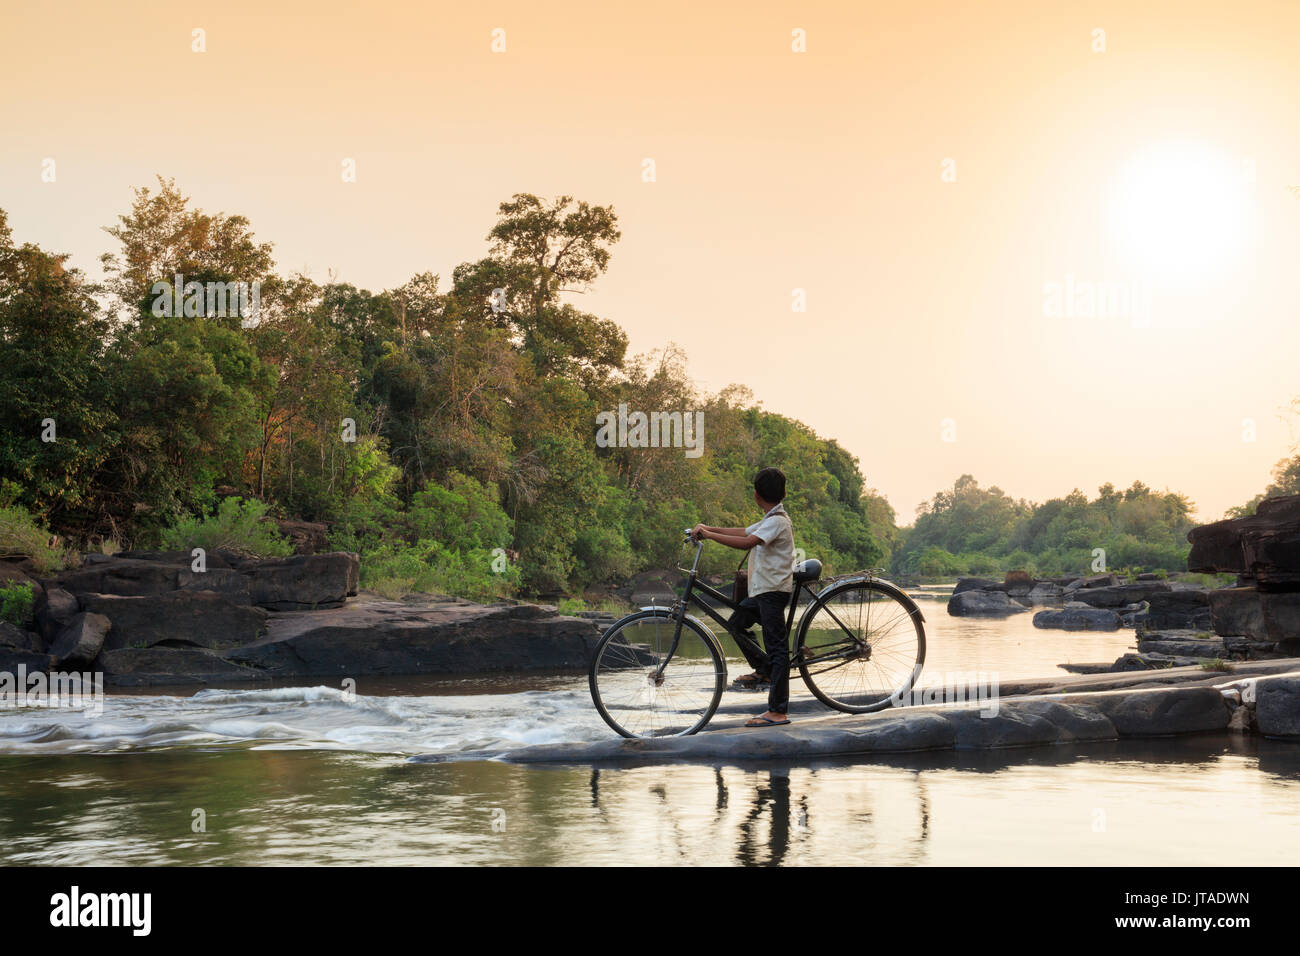 School boy on a bicycle crossing a river on his way to school, Chi Phat, Koh Kong, Cambodia, Indochina, Southeast Asia, Asia - Stock Image